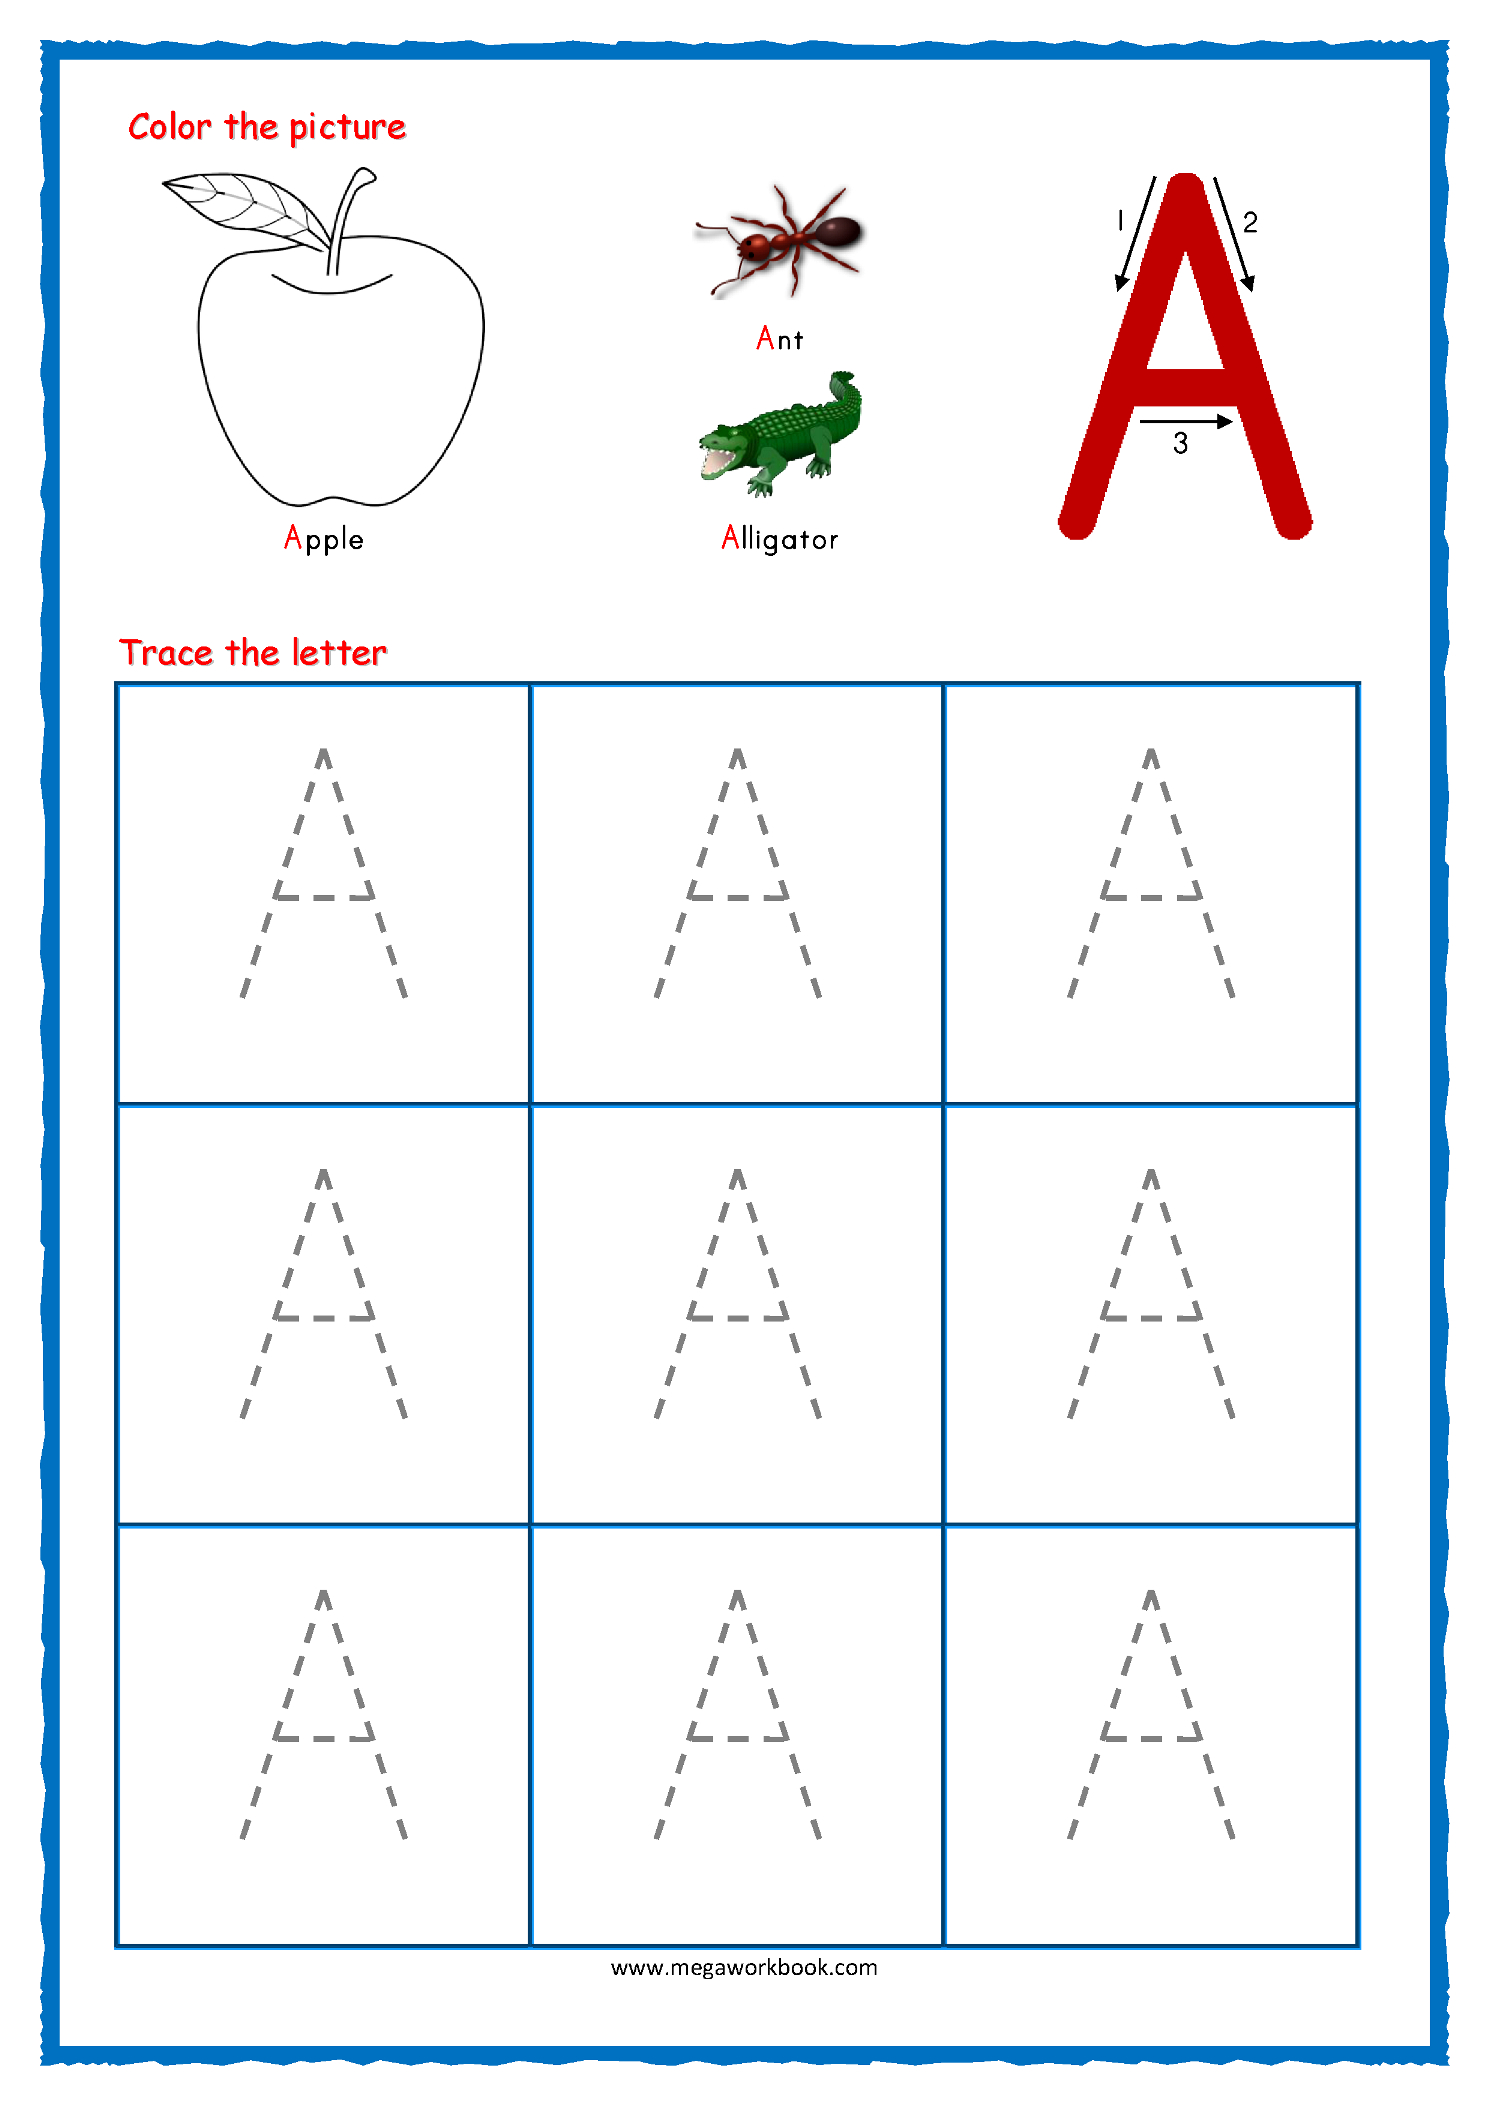 Coloring Book : Coloring Book Alphabet Tracing Worksheets pertaining to Tracing Letter A Worksheets For Preschool